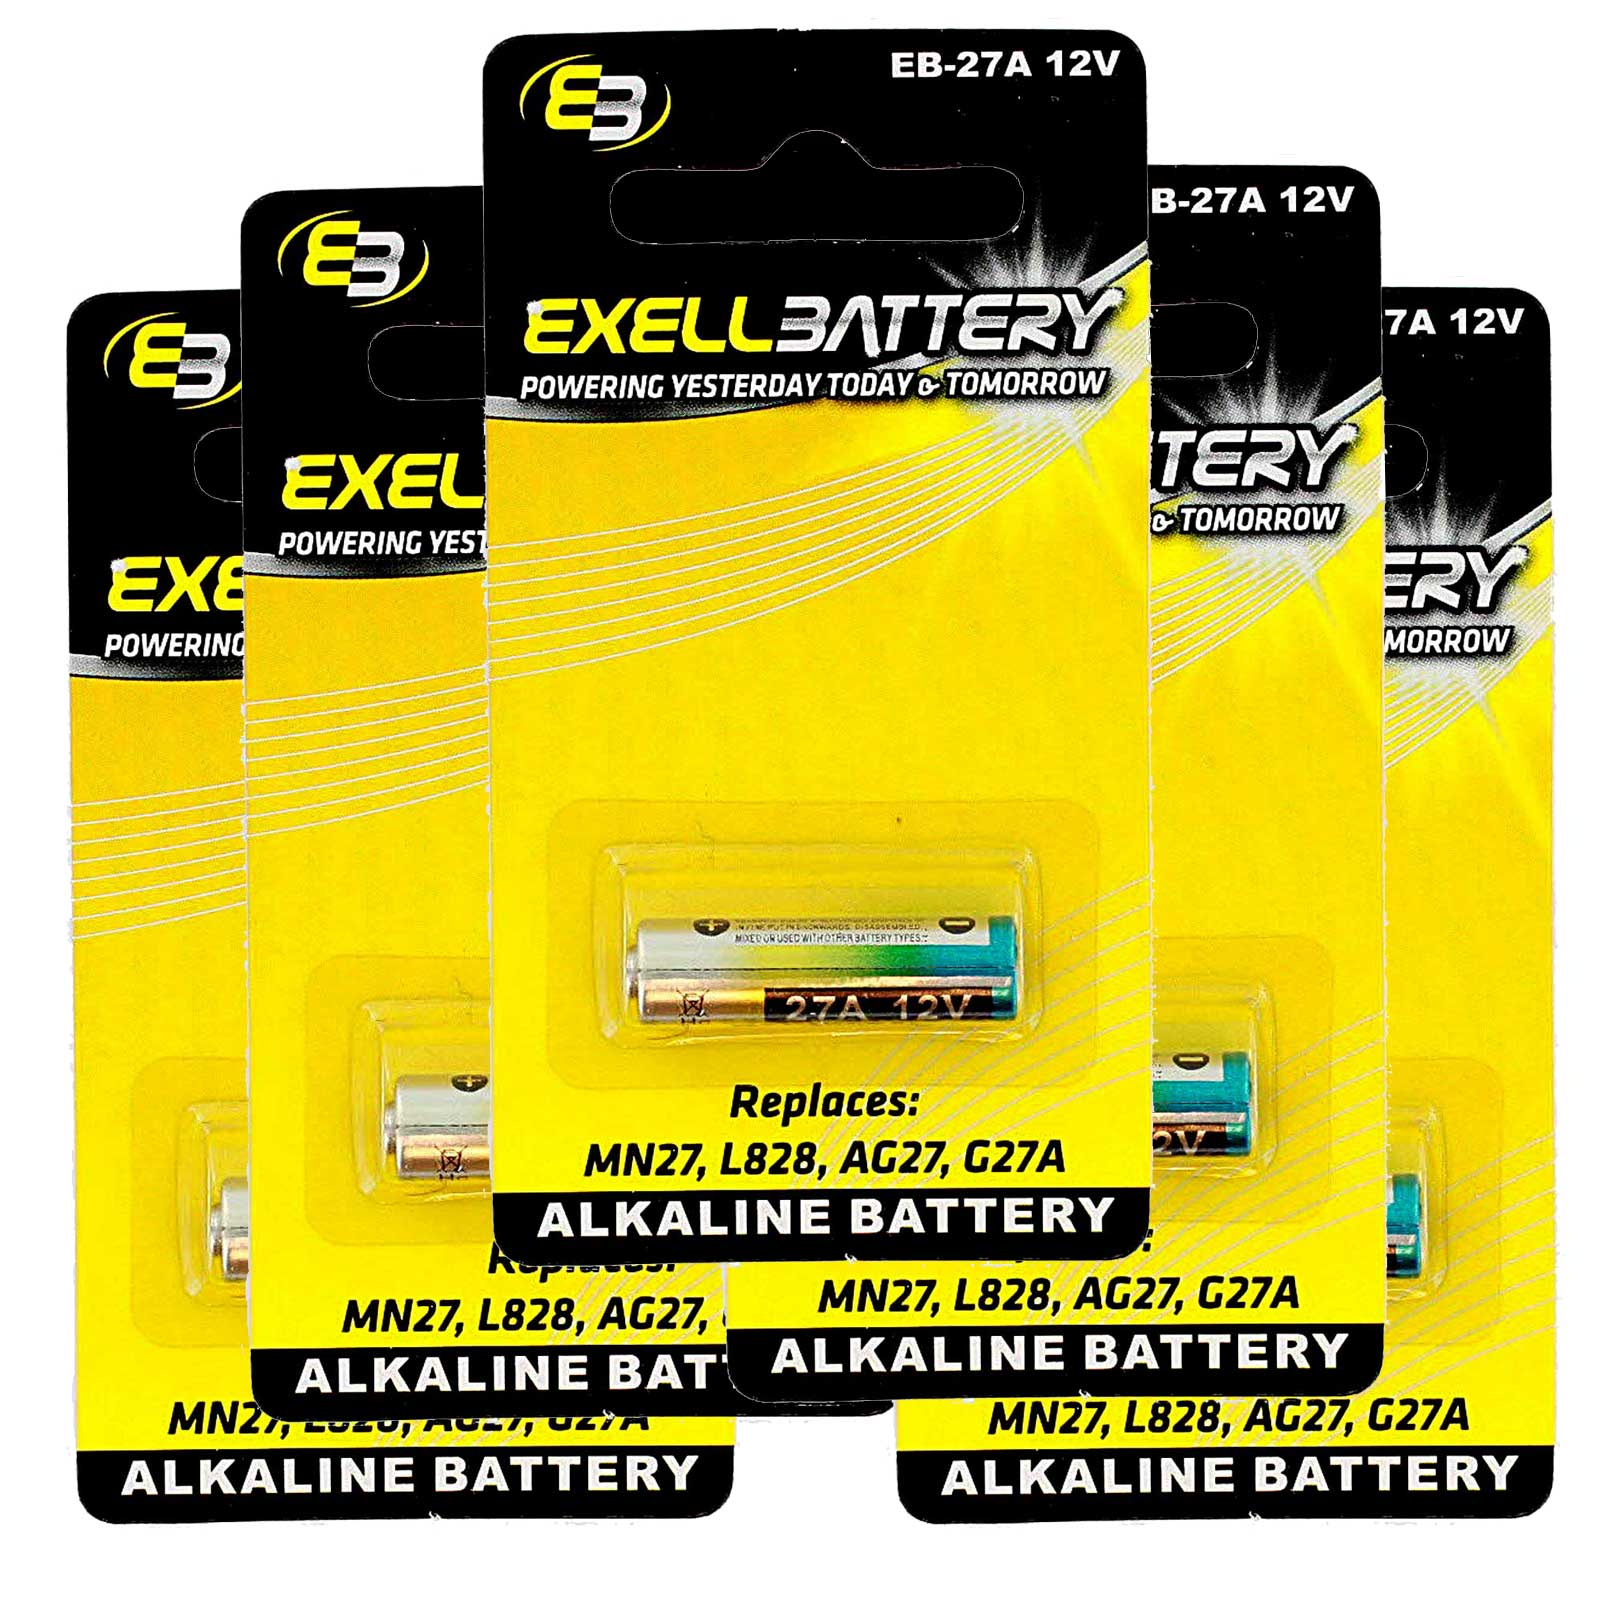 5x Exell EB-27A Alkaline 12V Battery Replaces L828 MN27 R27A FAST USA SHIP | eBay